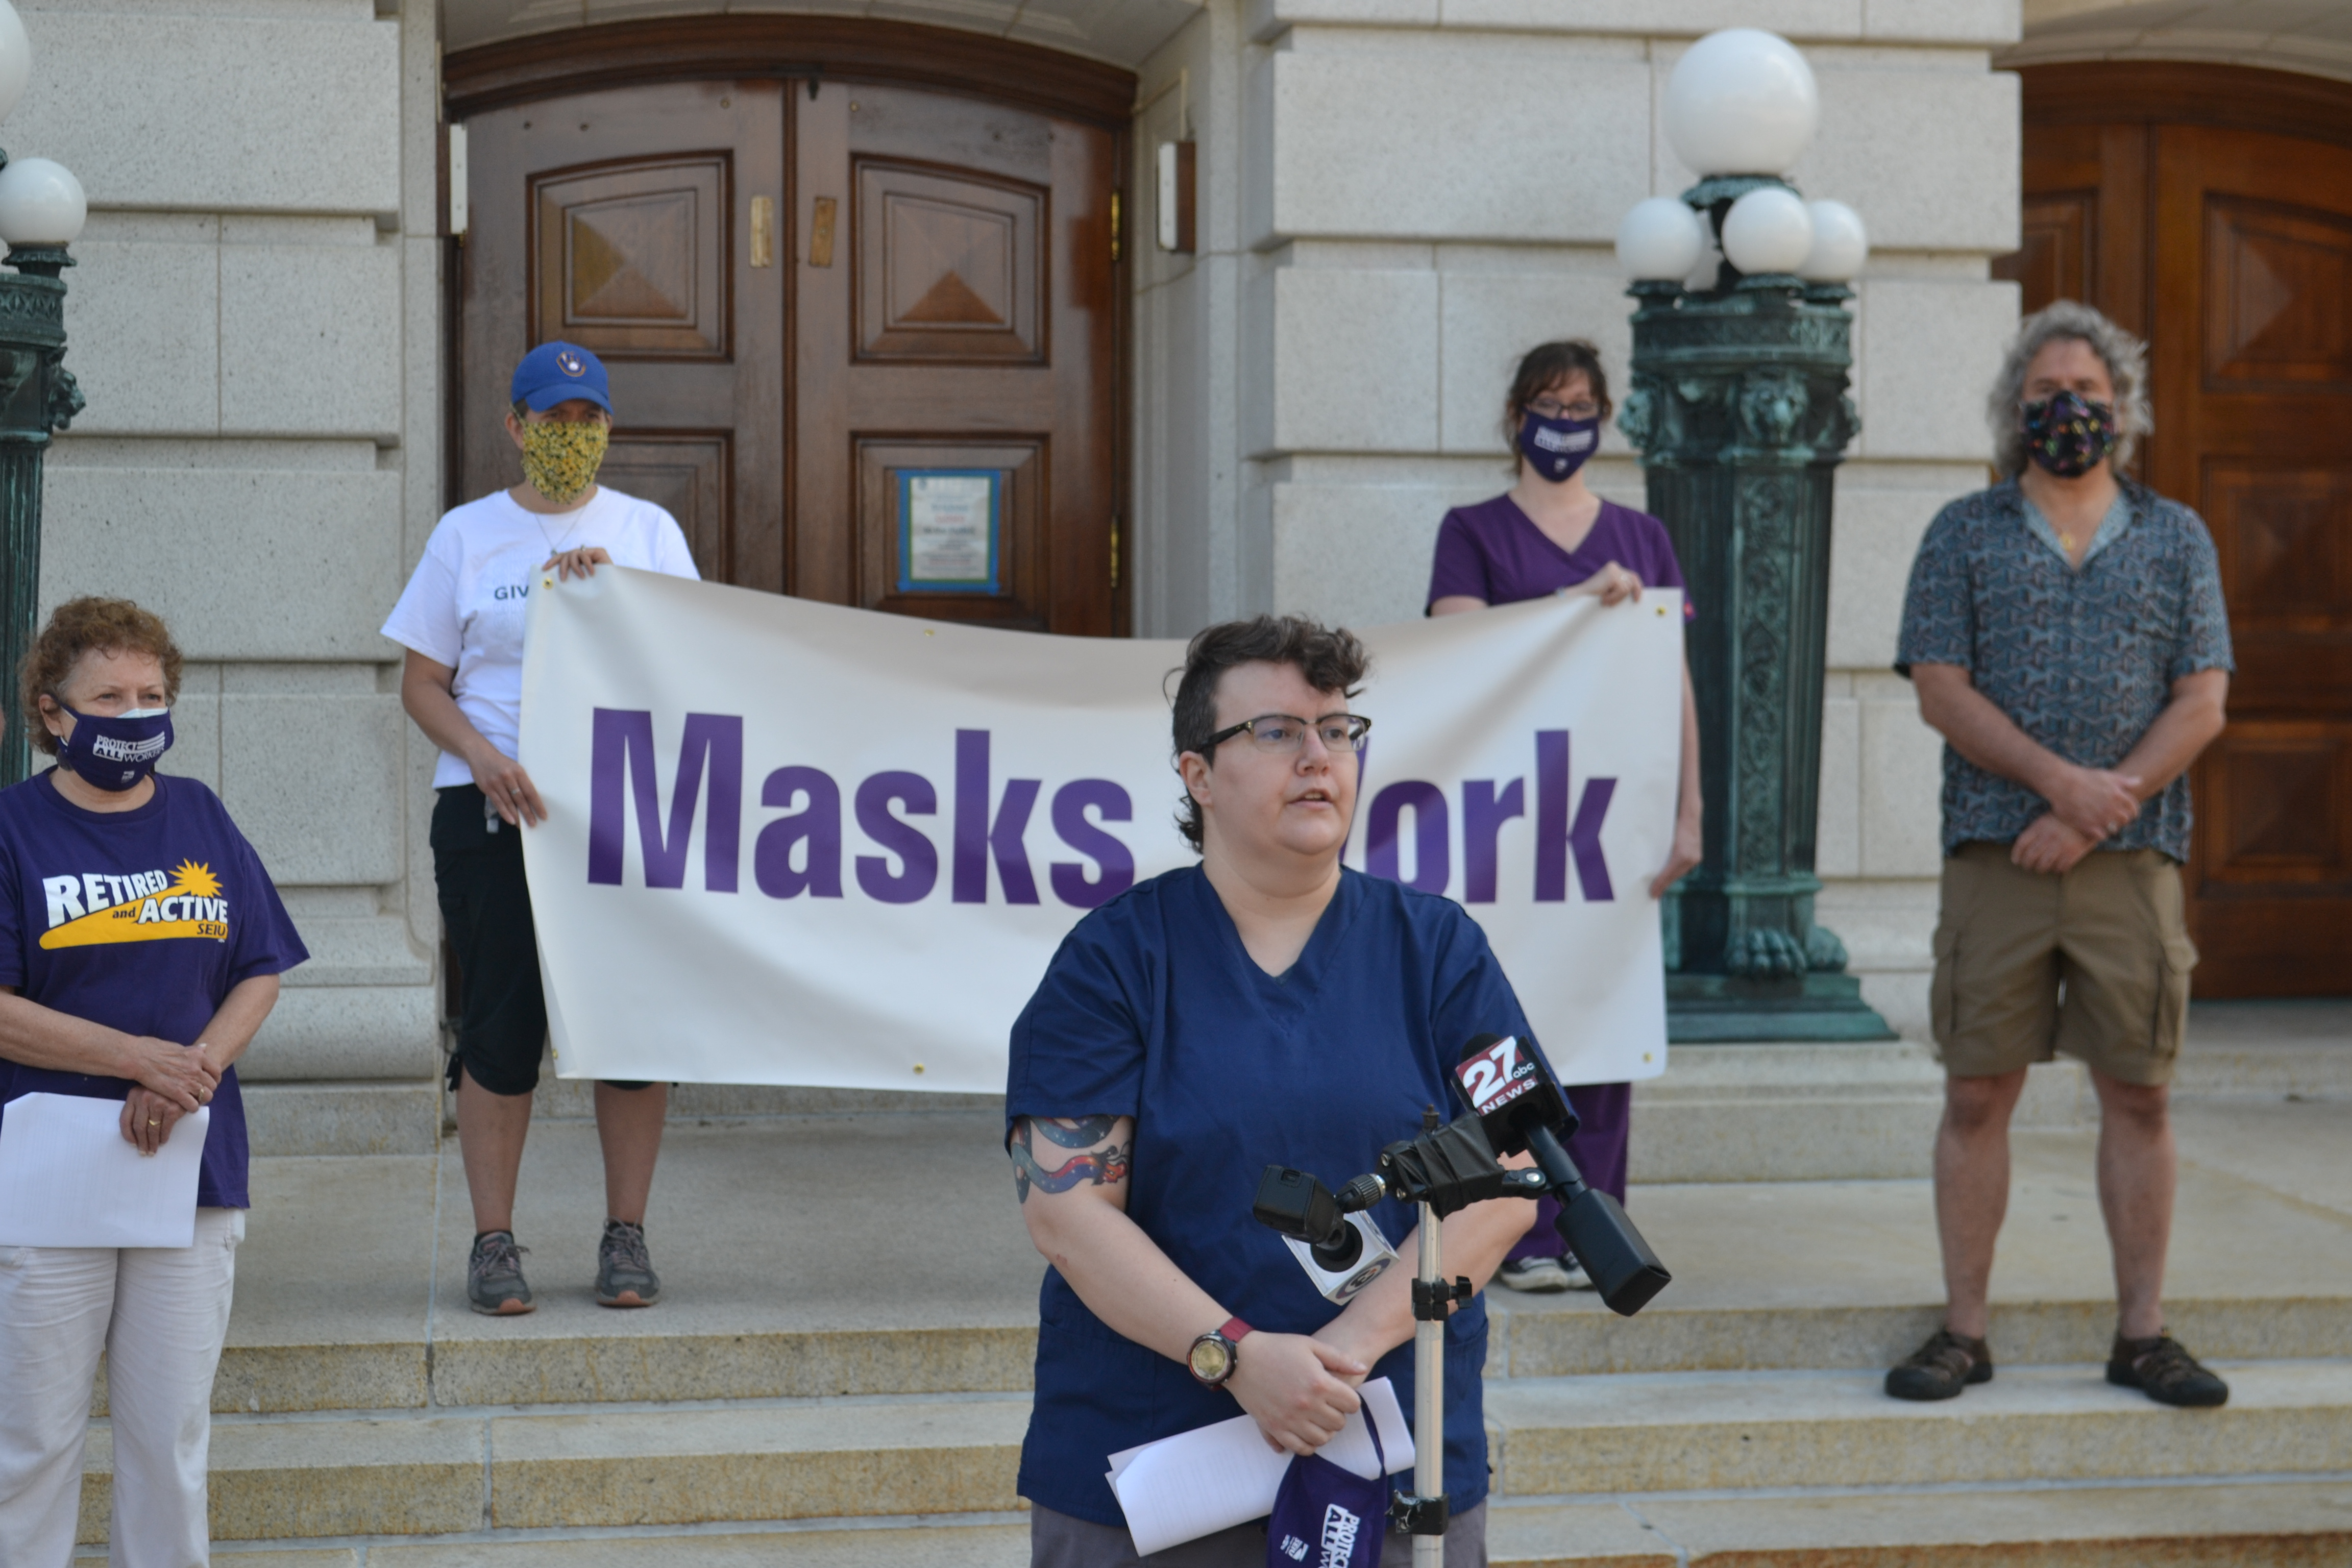 Madison nurse Kate Walton speaks about the importance of wearing a mask to prevent the spread of COVID-19, at a news conference outside the state Capitol Thursday urging lawmakers not to override Gov. Tony Evers' mask order. Photo by Erik Gunn/Wisconsin Examiner.